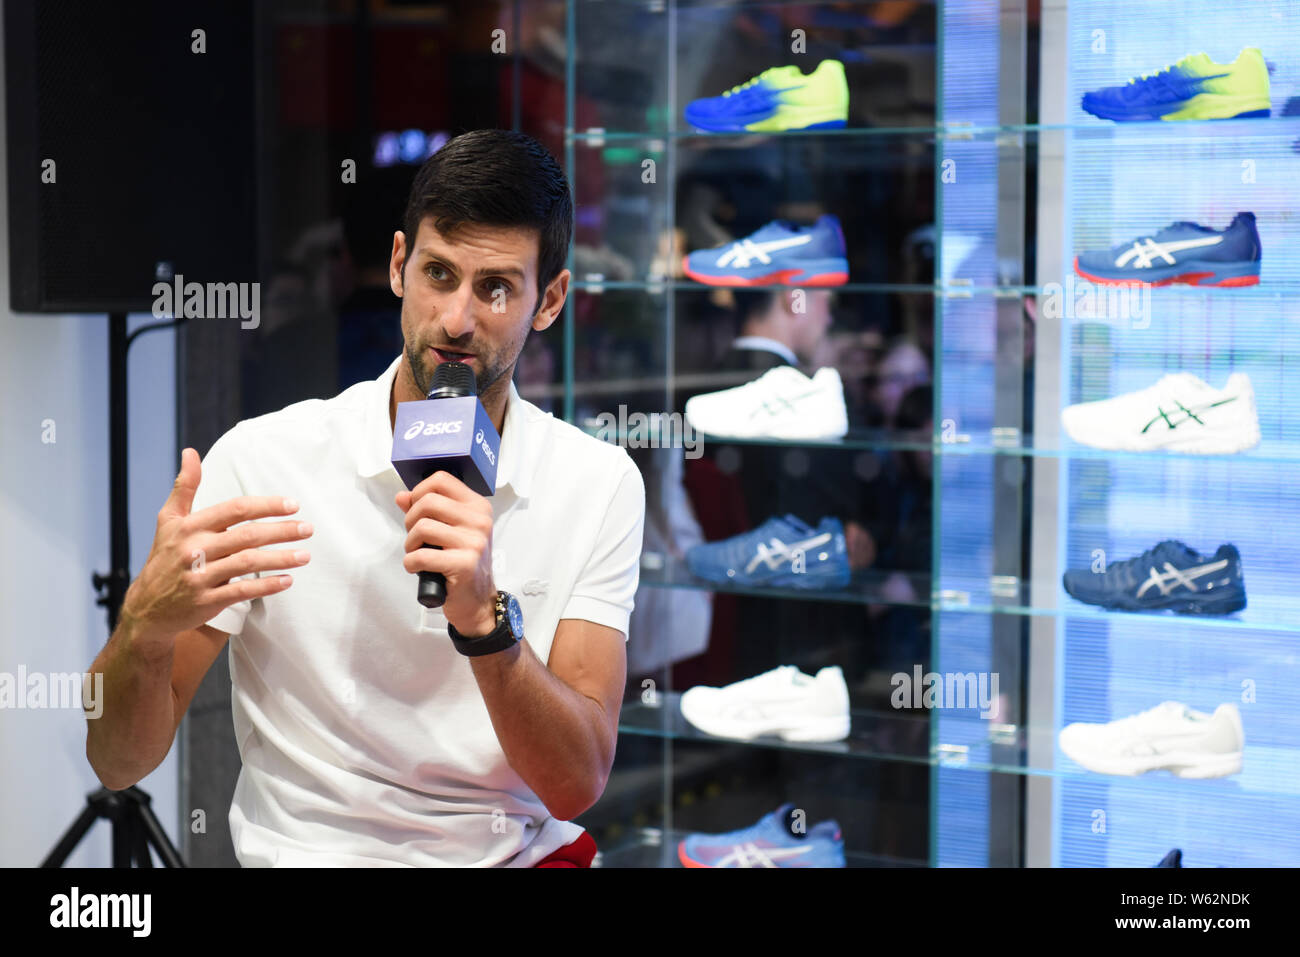 Serbian Tennis Star Novak Djokovic Attends A Promotional Event For Asics Ahead Of The Rolex Shanghai Masters 2018 Tennis Tournament In Shanghai China Stock Photo Alamy